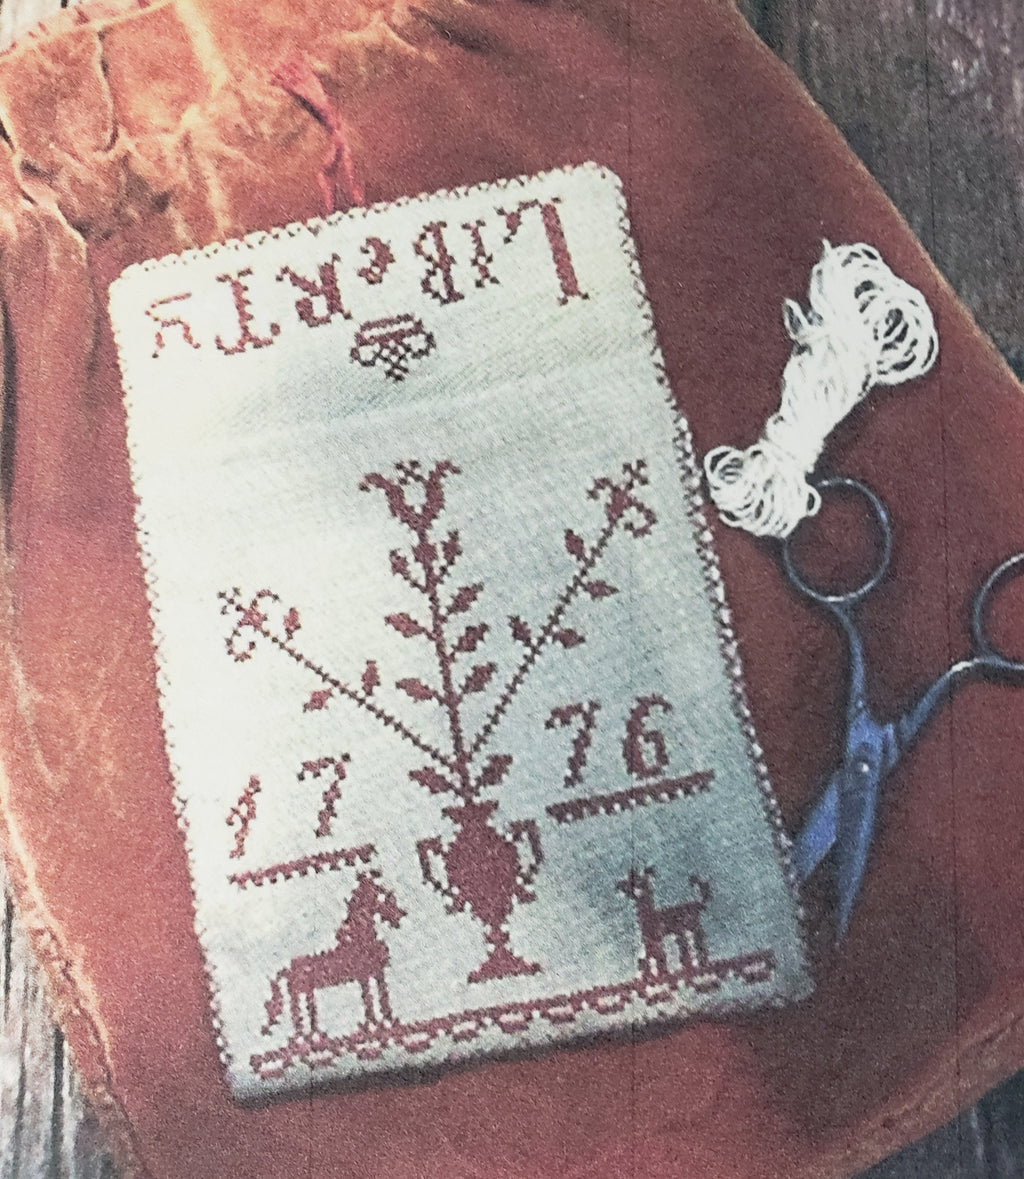 LIBERTY 1776 Sewing Pouch Cross Stitch Kit - Stacy Nash Primitives Cross Stitch